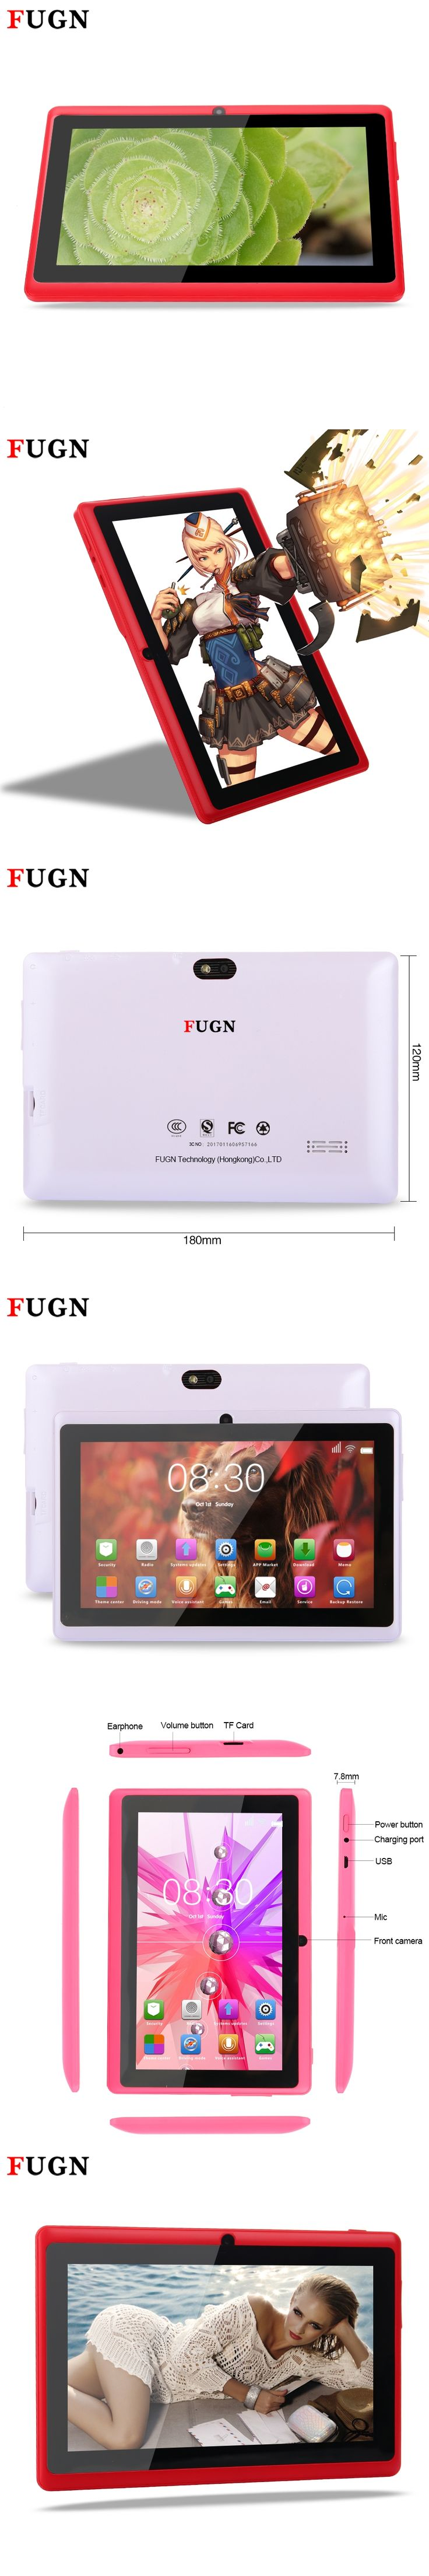 FUGN 7inch Tablet PC Android 5.1 for Kids Quad Core 512MB+16GB Wifi Dual Cameras 3g Phone Call Notebook Tablets with Keyboard 8'